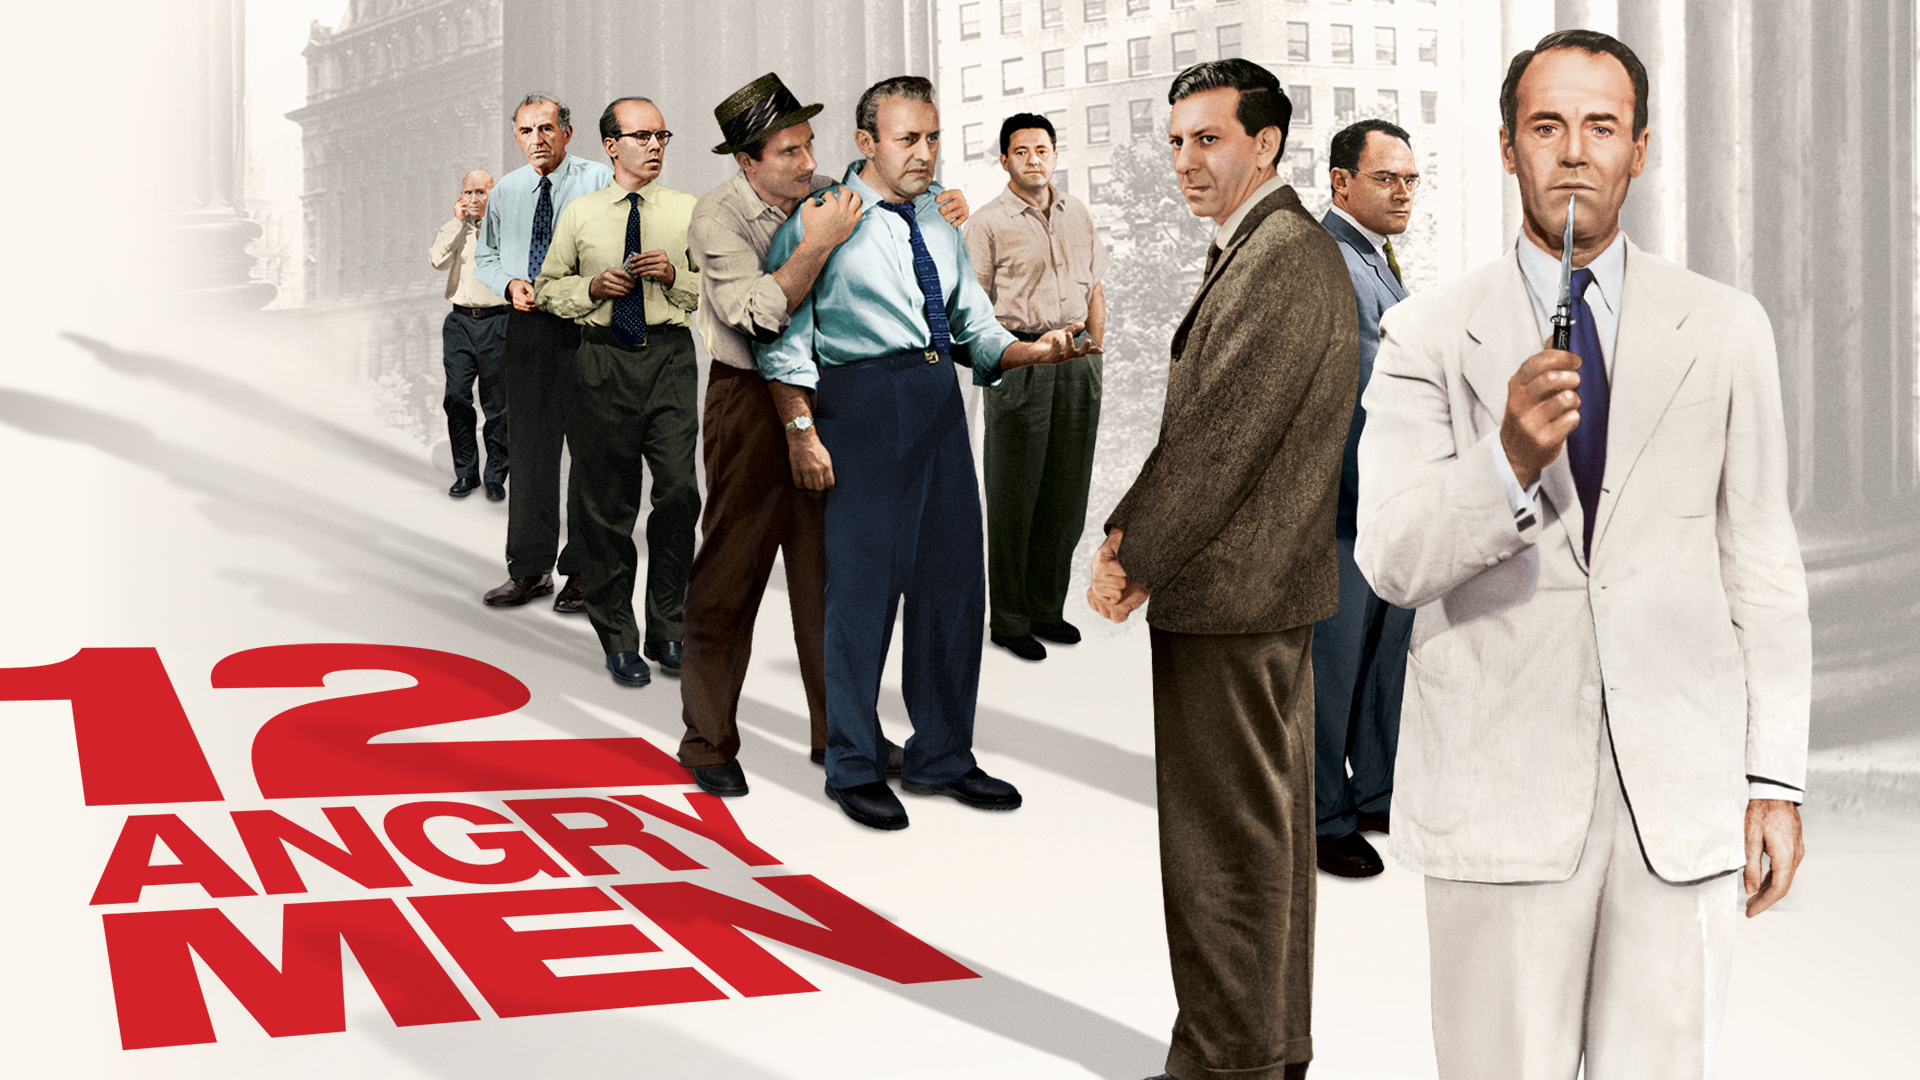 12 Angry Men movie review